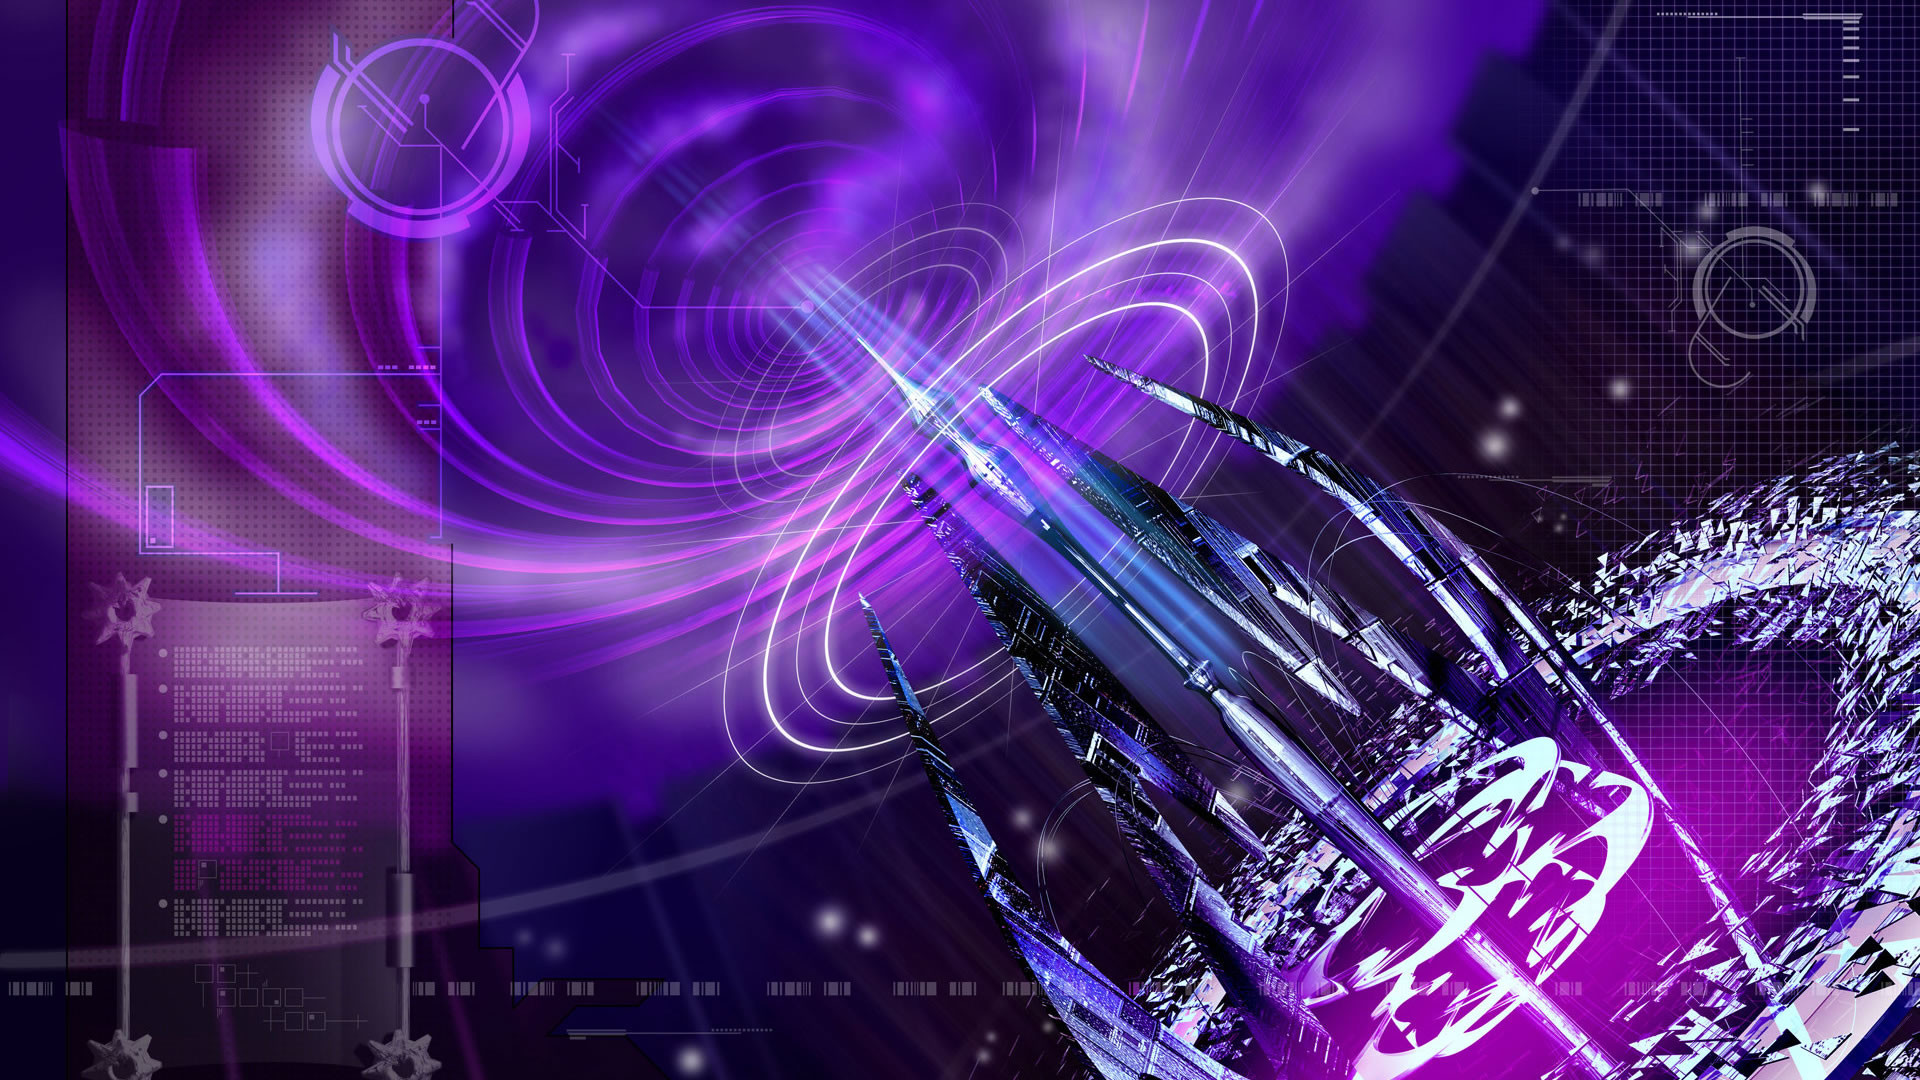 1920x1080 Abstract wallpapers purple rain wallpaper raindrops backgrounds .